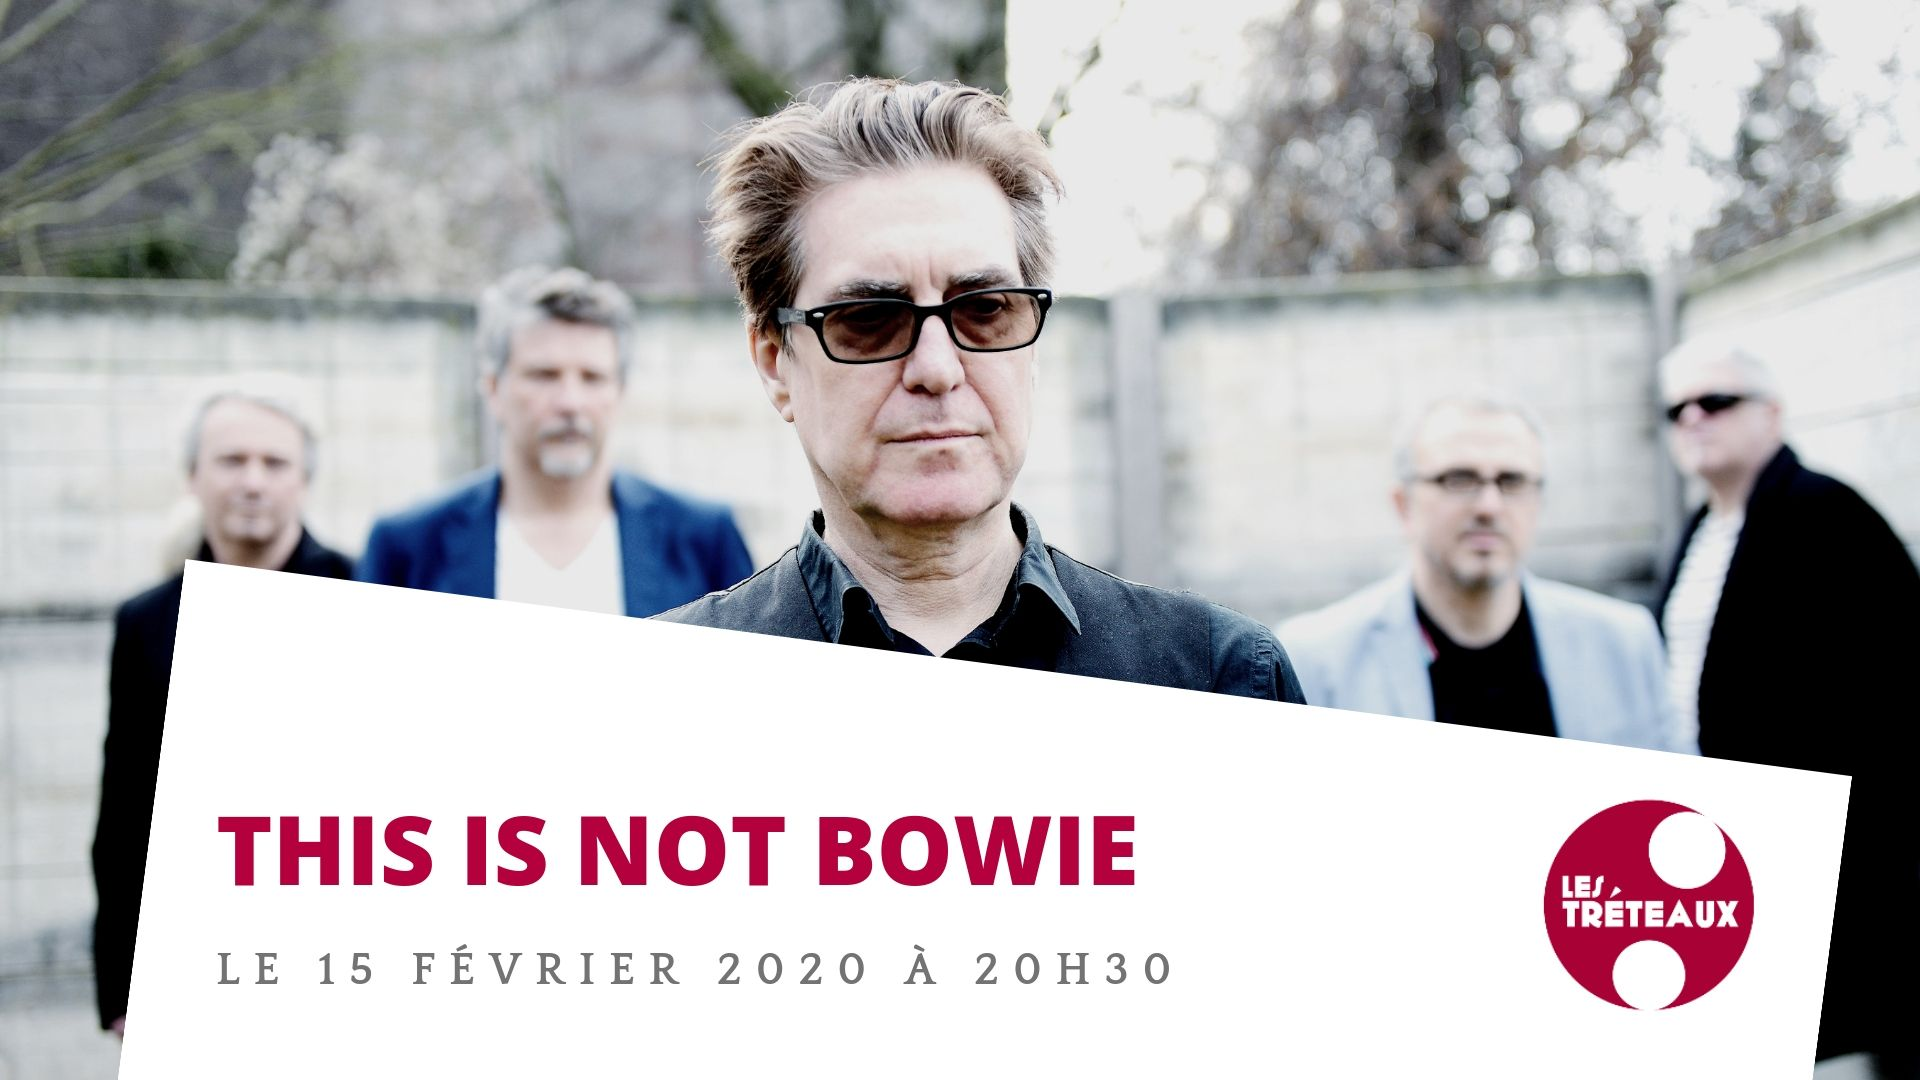 This is not Bowie